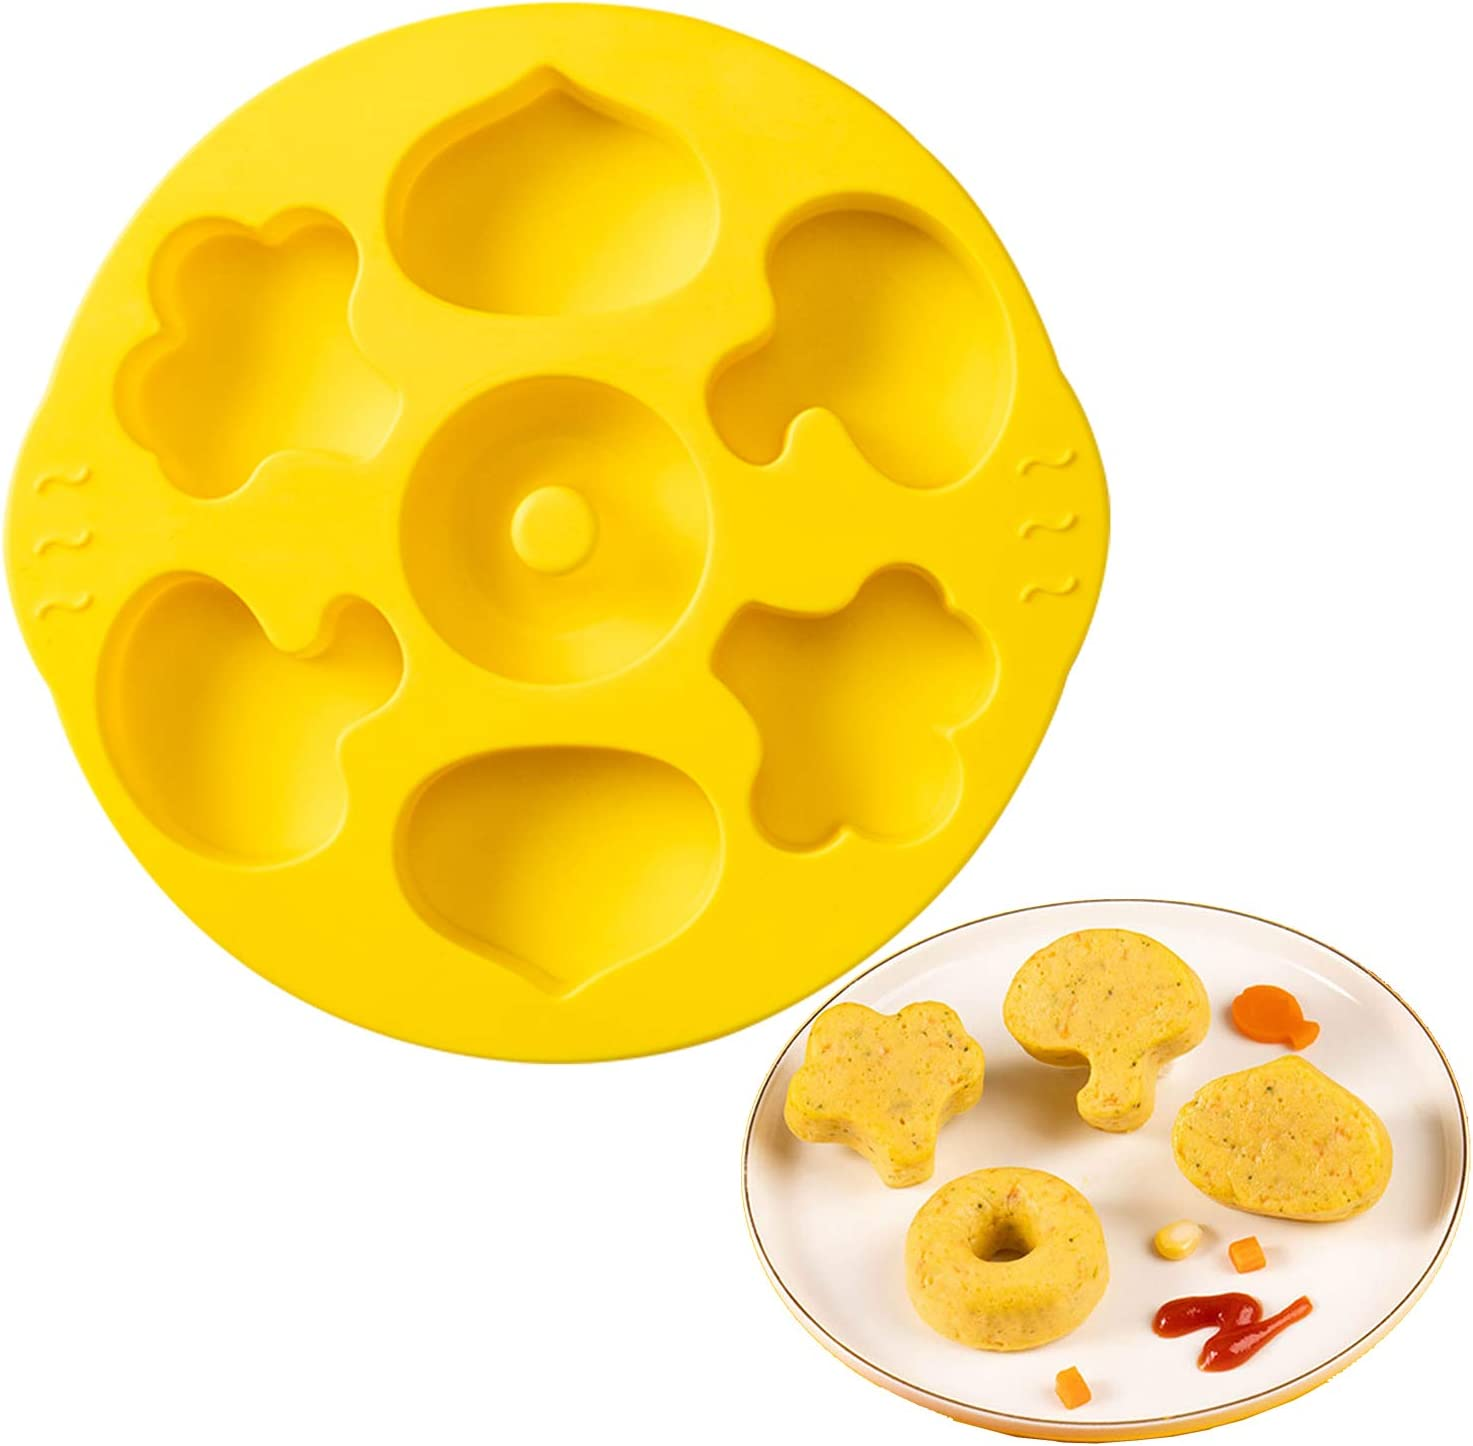 Blest Silicone Vegetable Mold for Baking Full-Size Cakes or Baby Foods,Non-Stick Bakeware Biscuit Mold,Donut Pan Muffin Mold Jelly Cake, Brownie &Chocolate Tray Food-Grade BPA Free